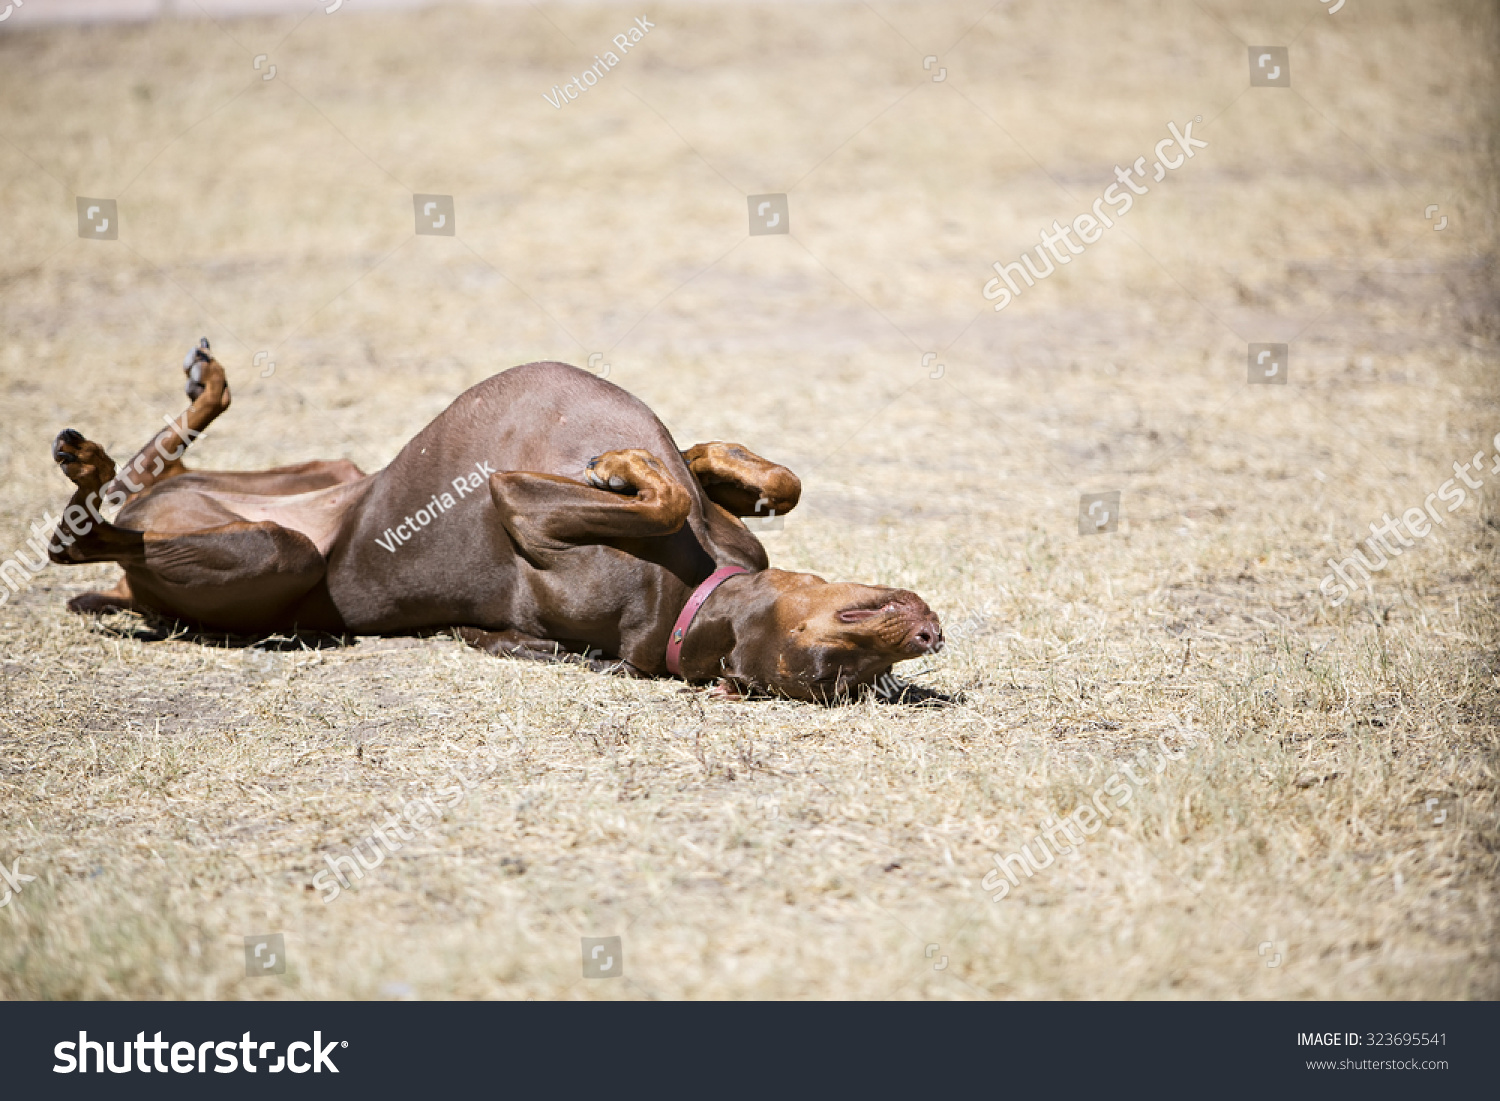 Red doberman rolling on ground outside stock photo